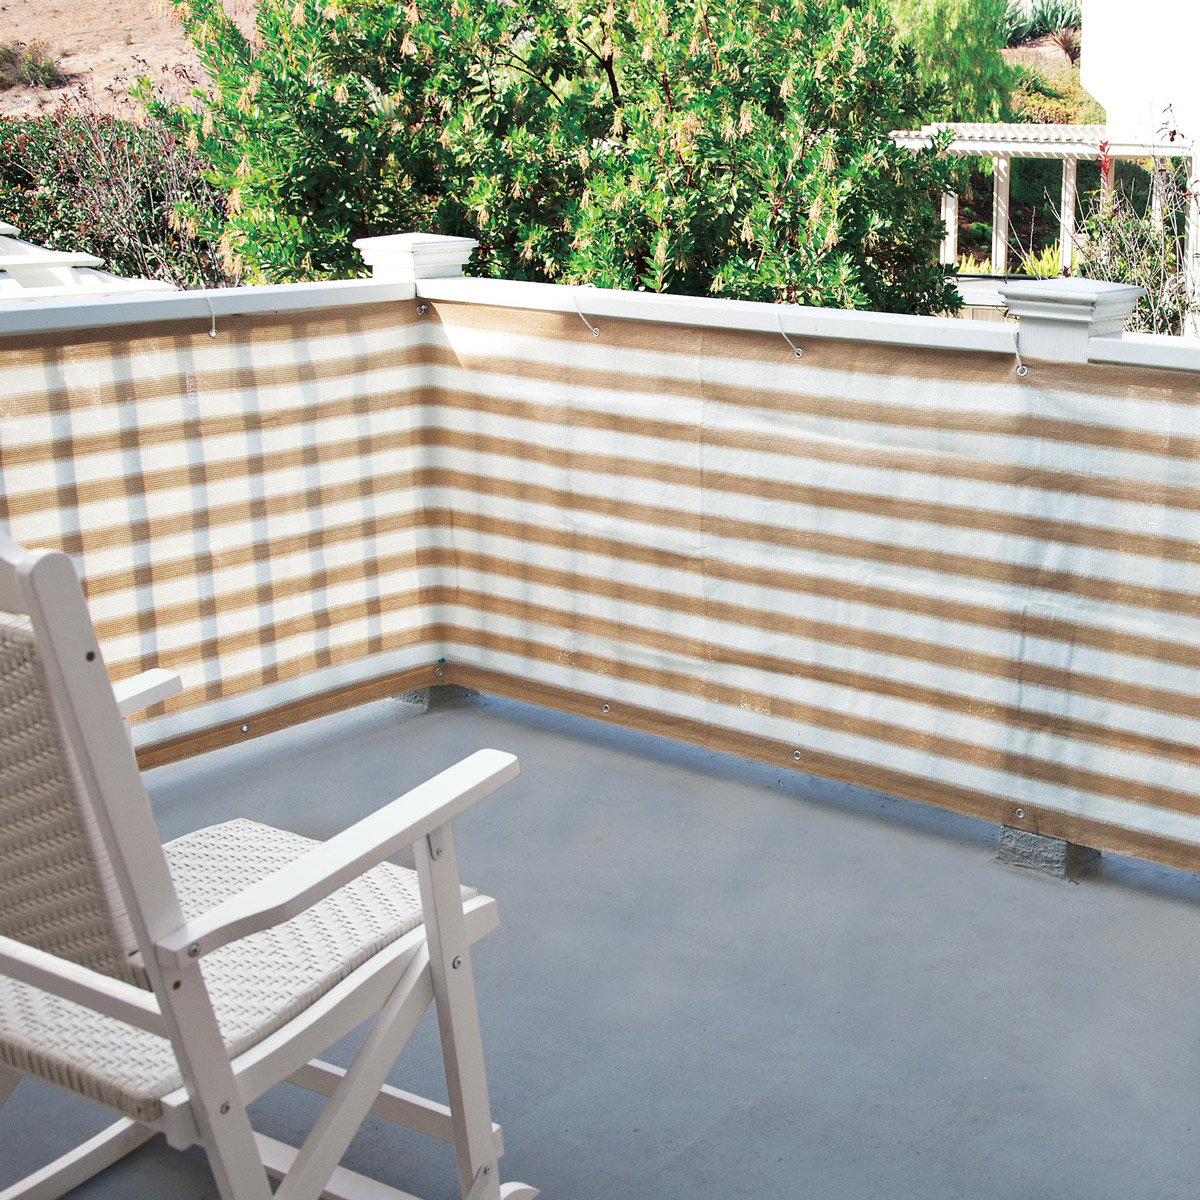 Privacy screen for deck porch and patio railings the for Outdoor privacy panels for decks